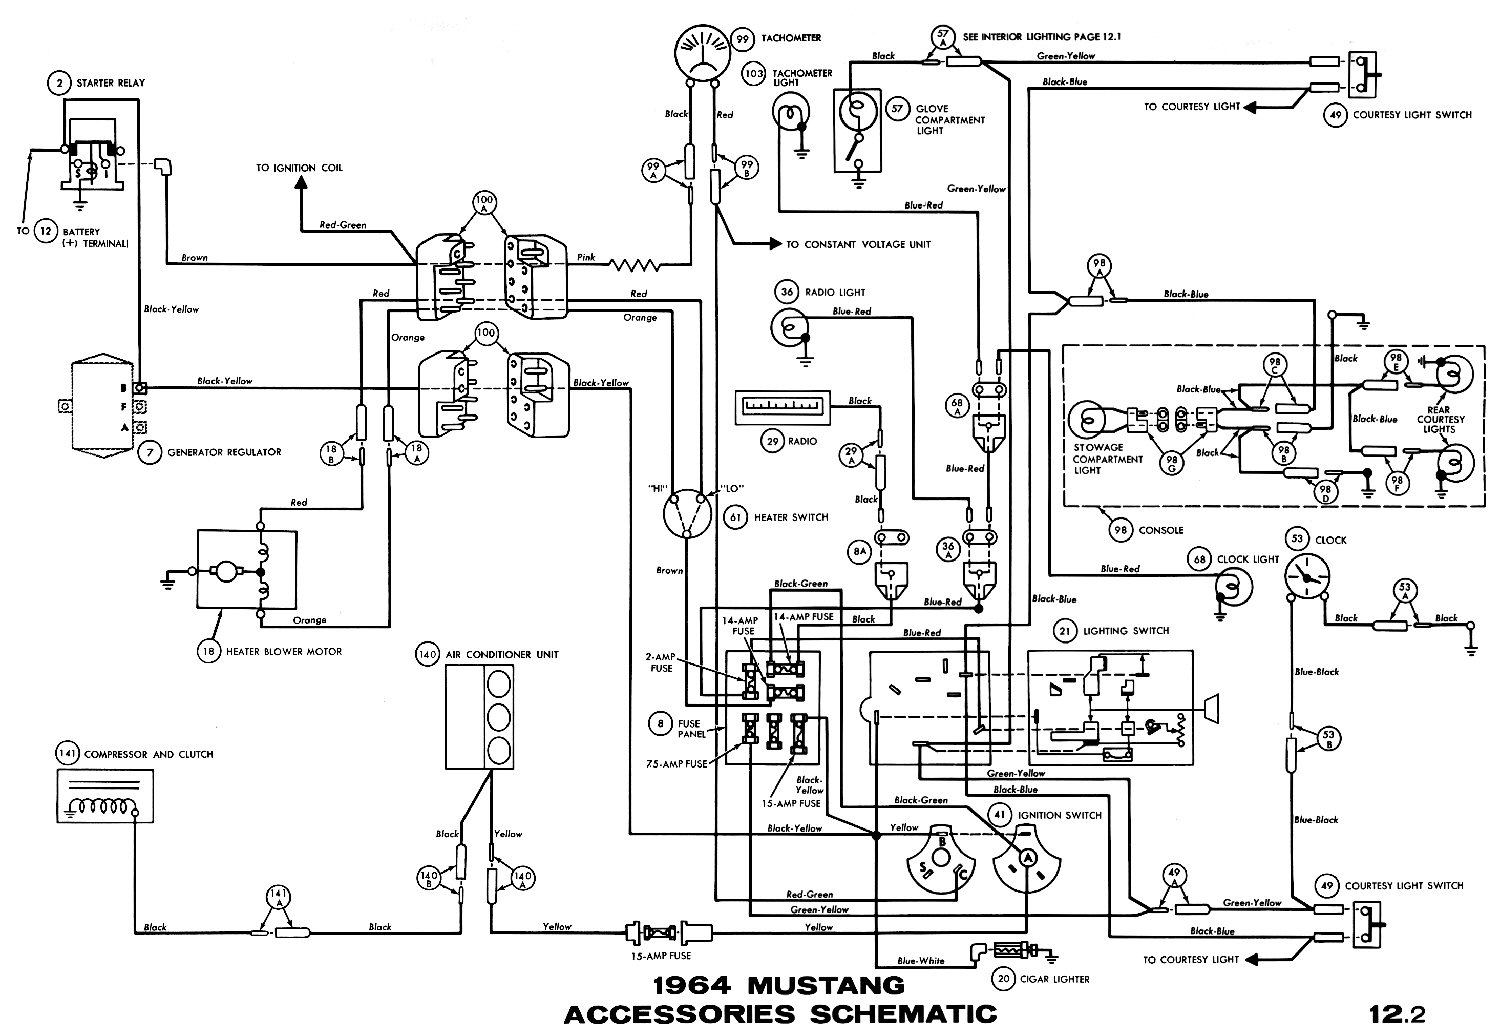 1964m 1964 mustang wiring diagrams average joe restoration 1965 mustang wiring diagram at bayanpartner.co